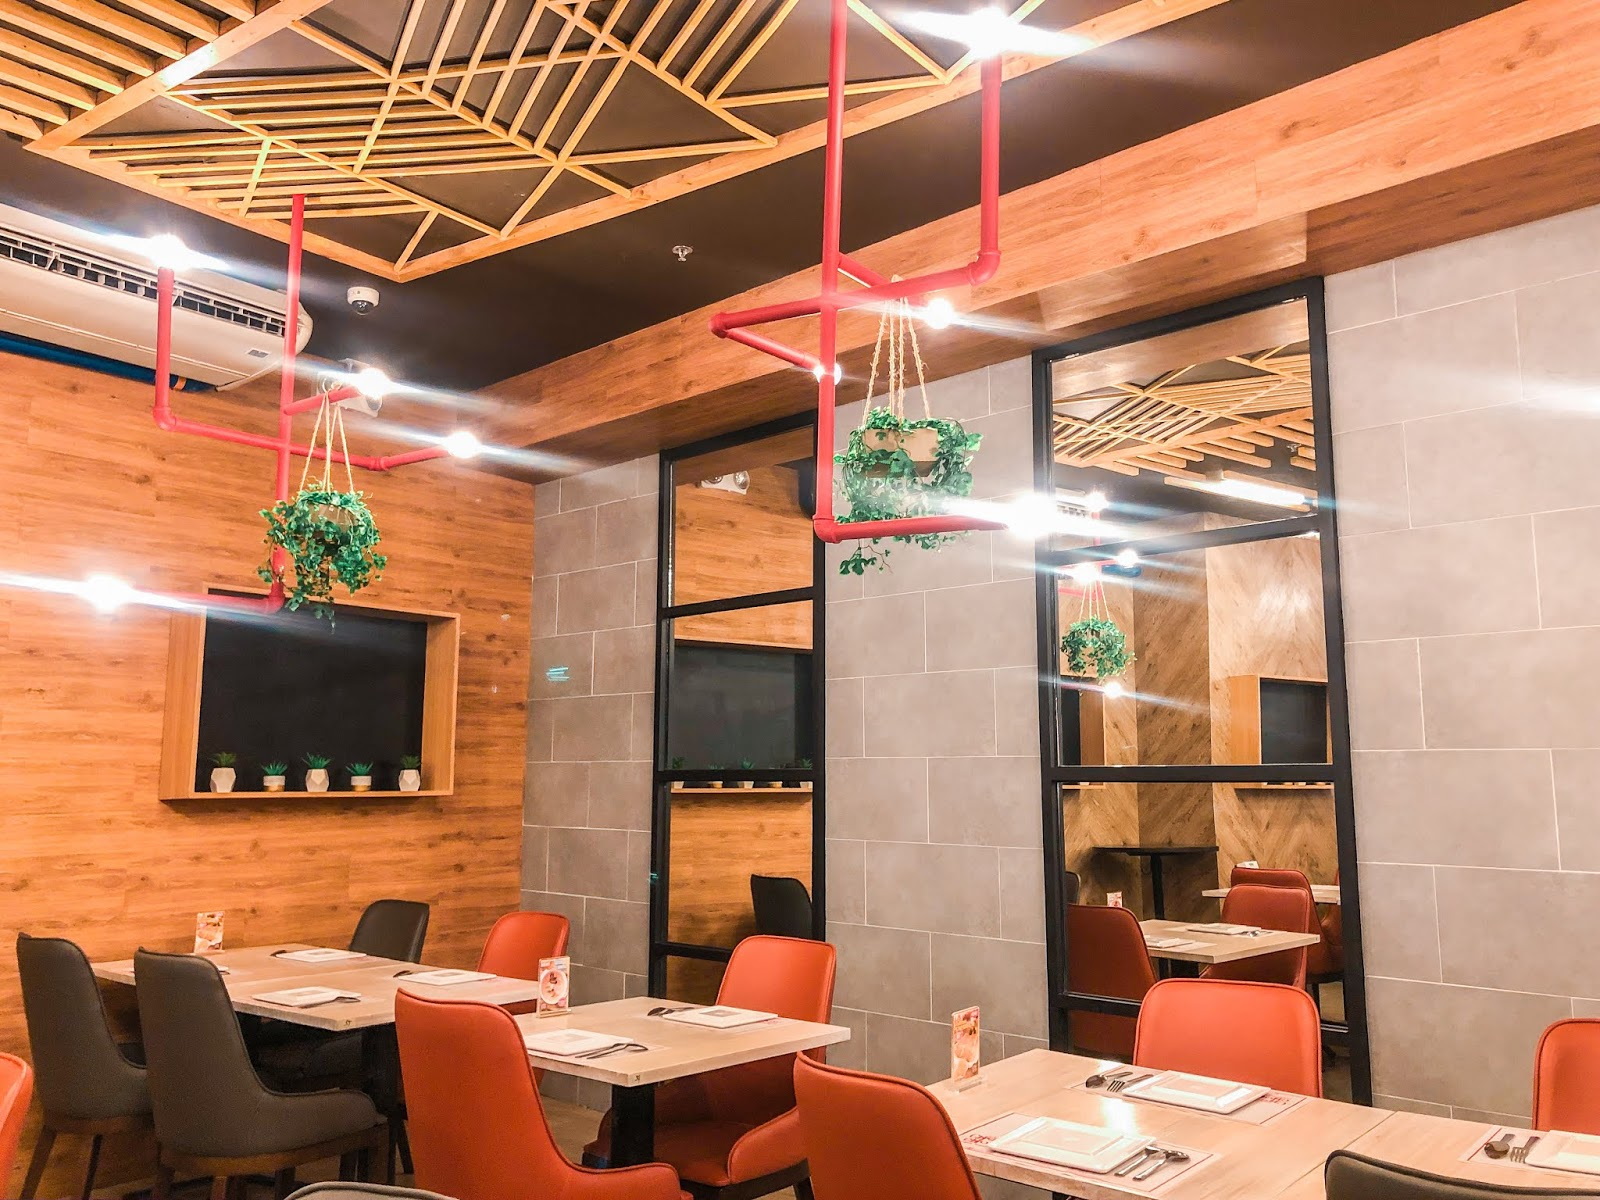 Choobi Choobi Finally Opens at Ayala Center Cebu